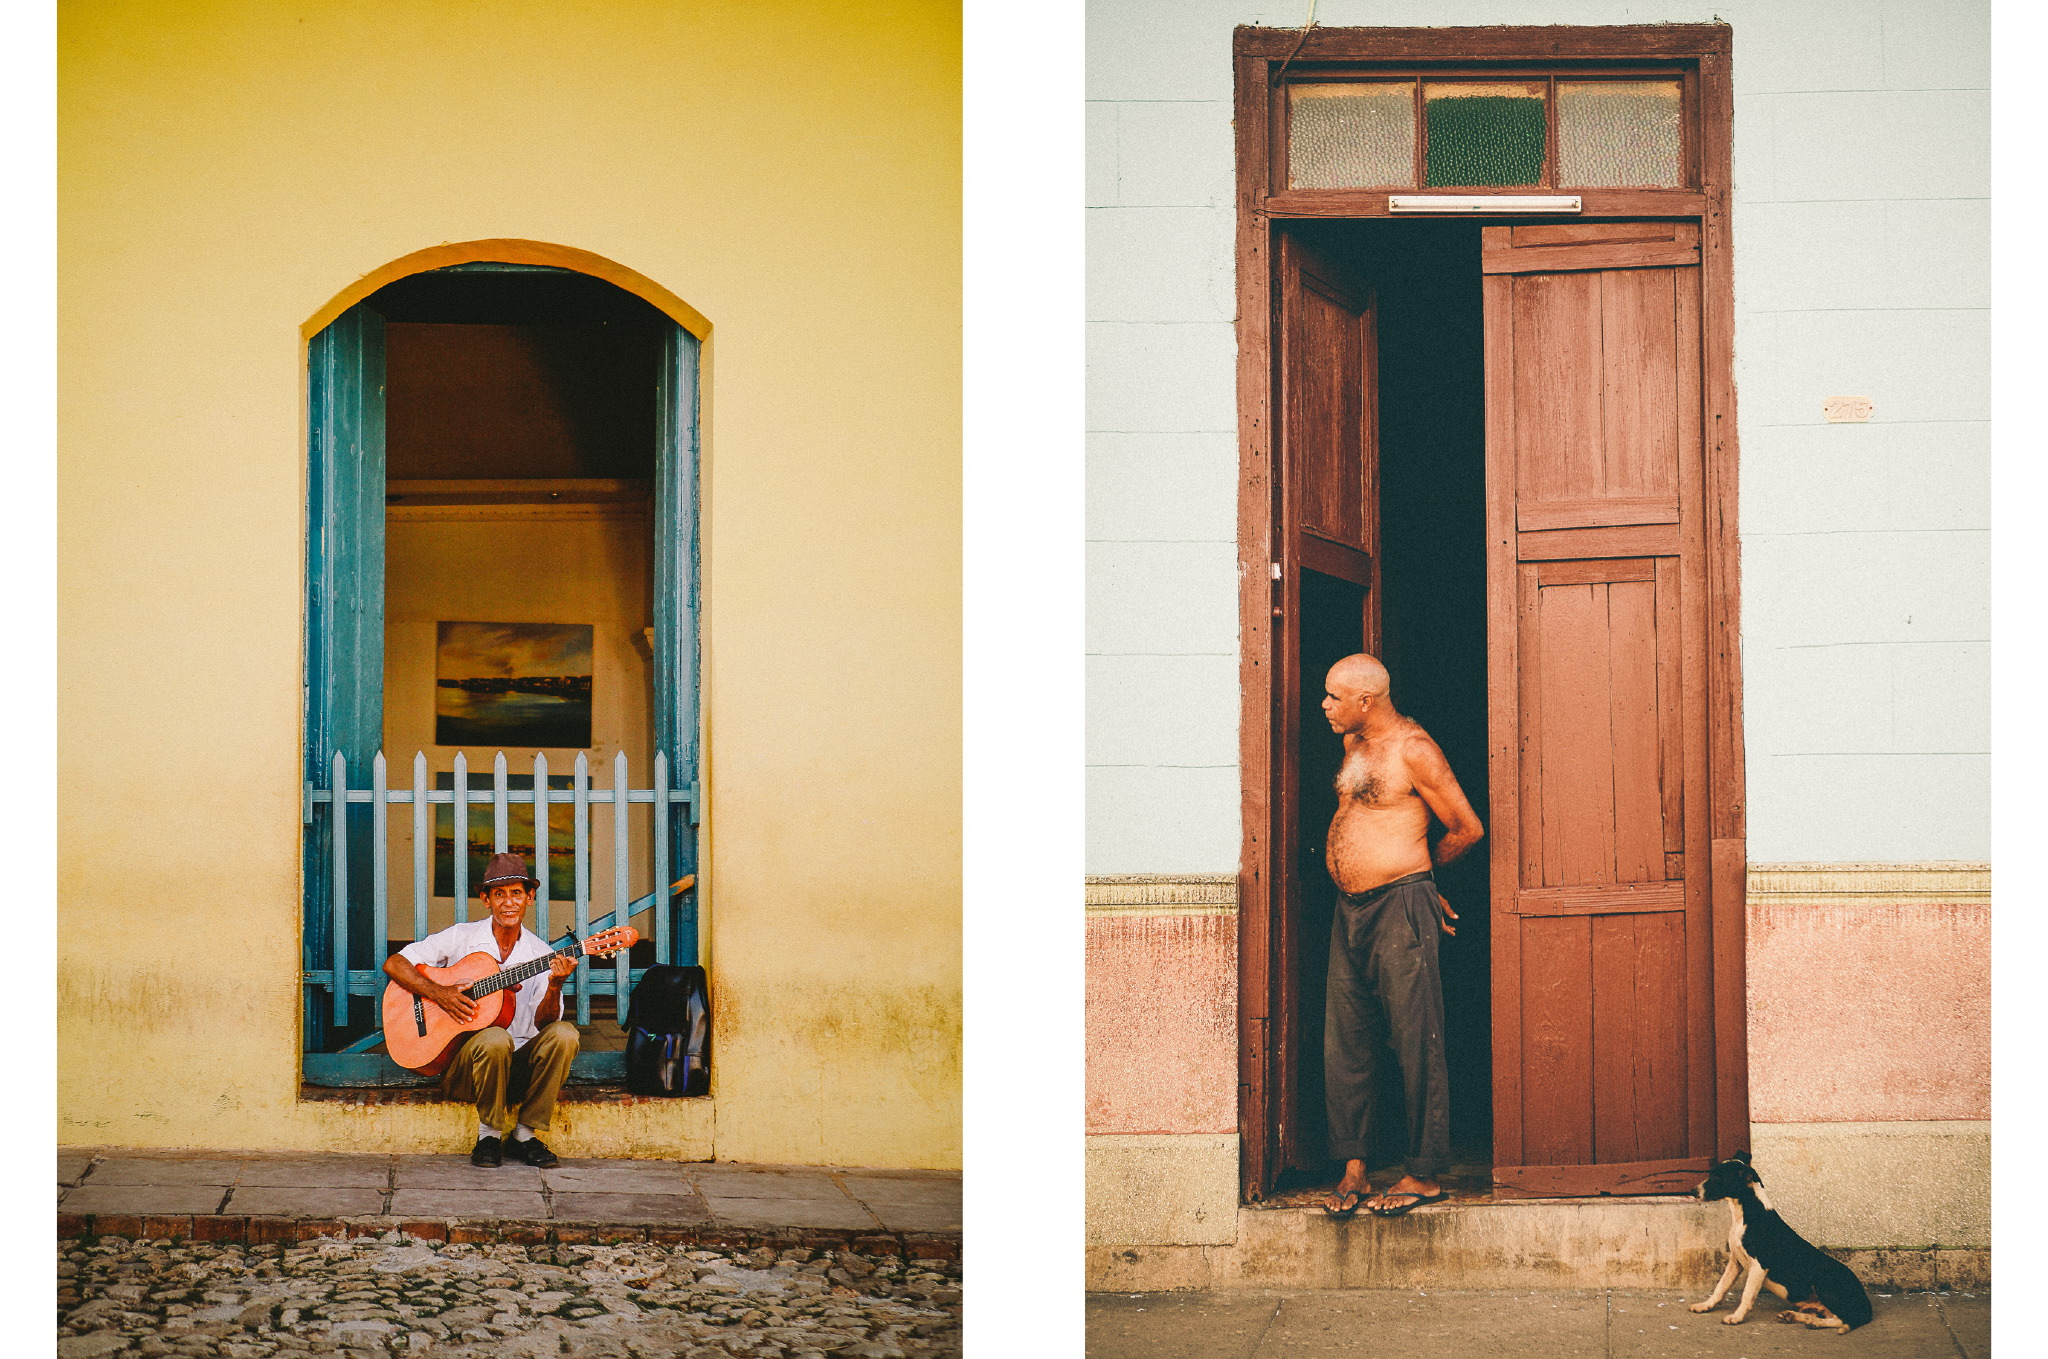 san diego wedding   photographer | collage of man with guitar outside yellow building and old man   by doorway